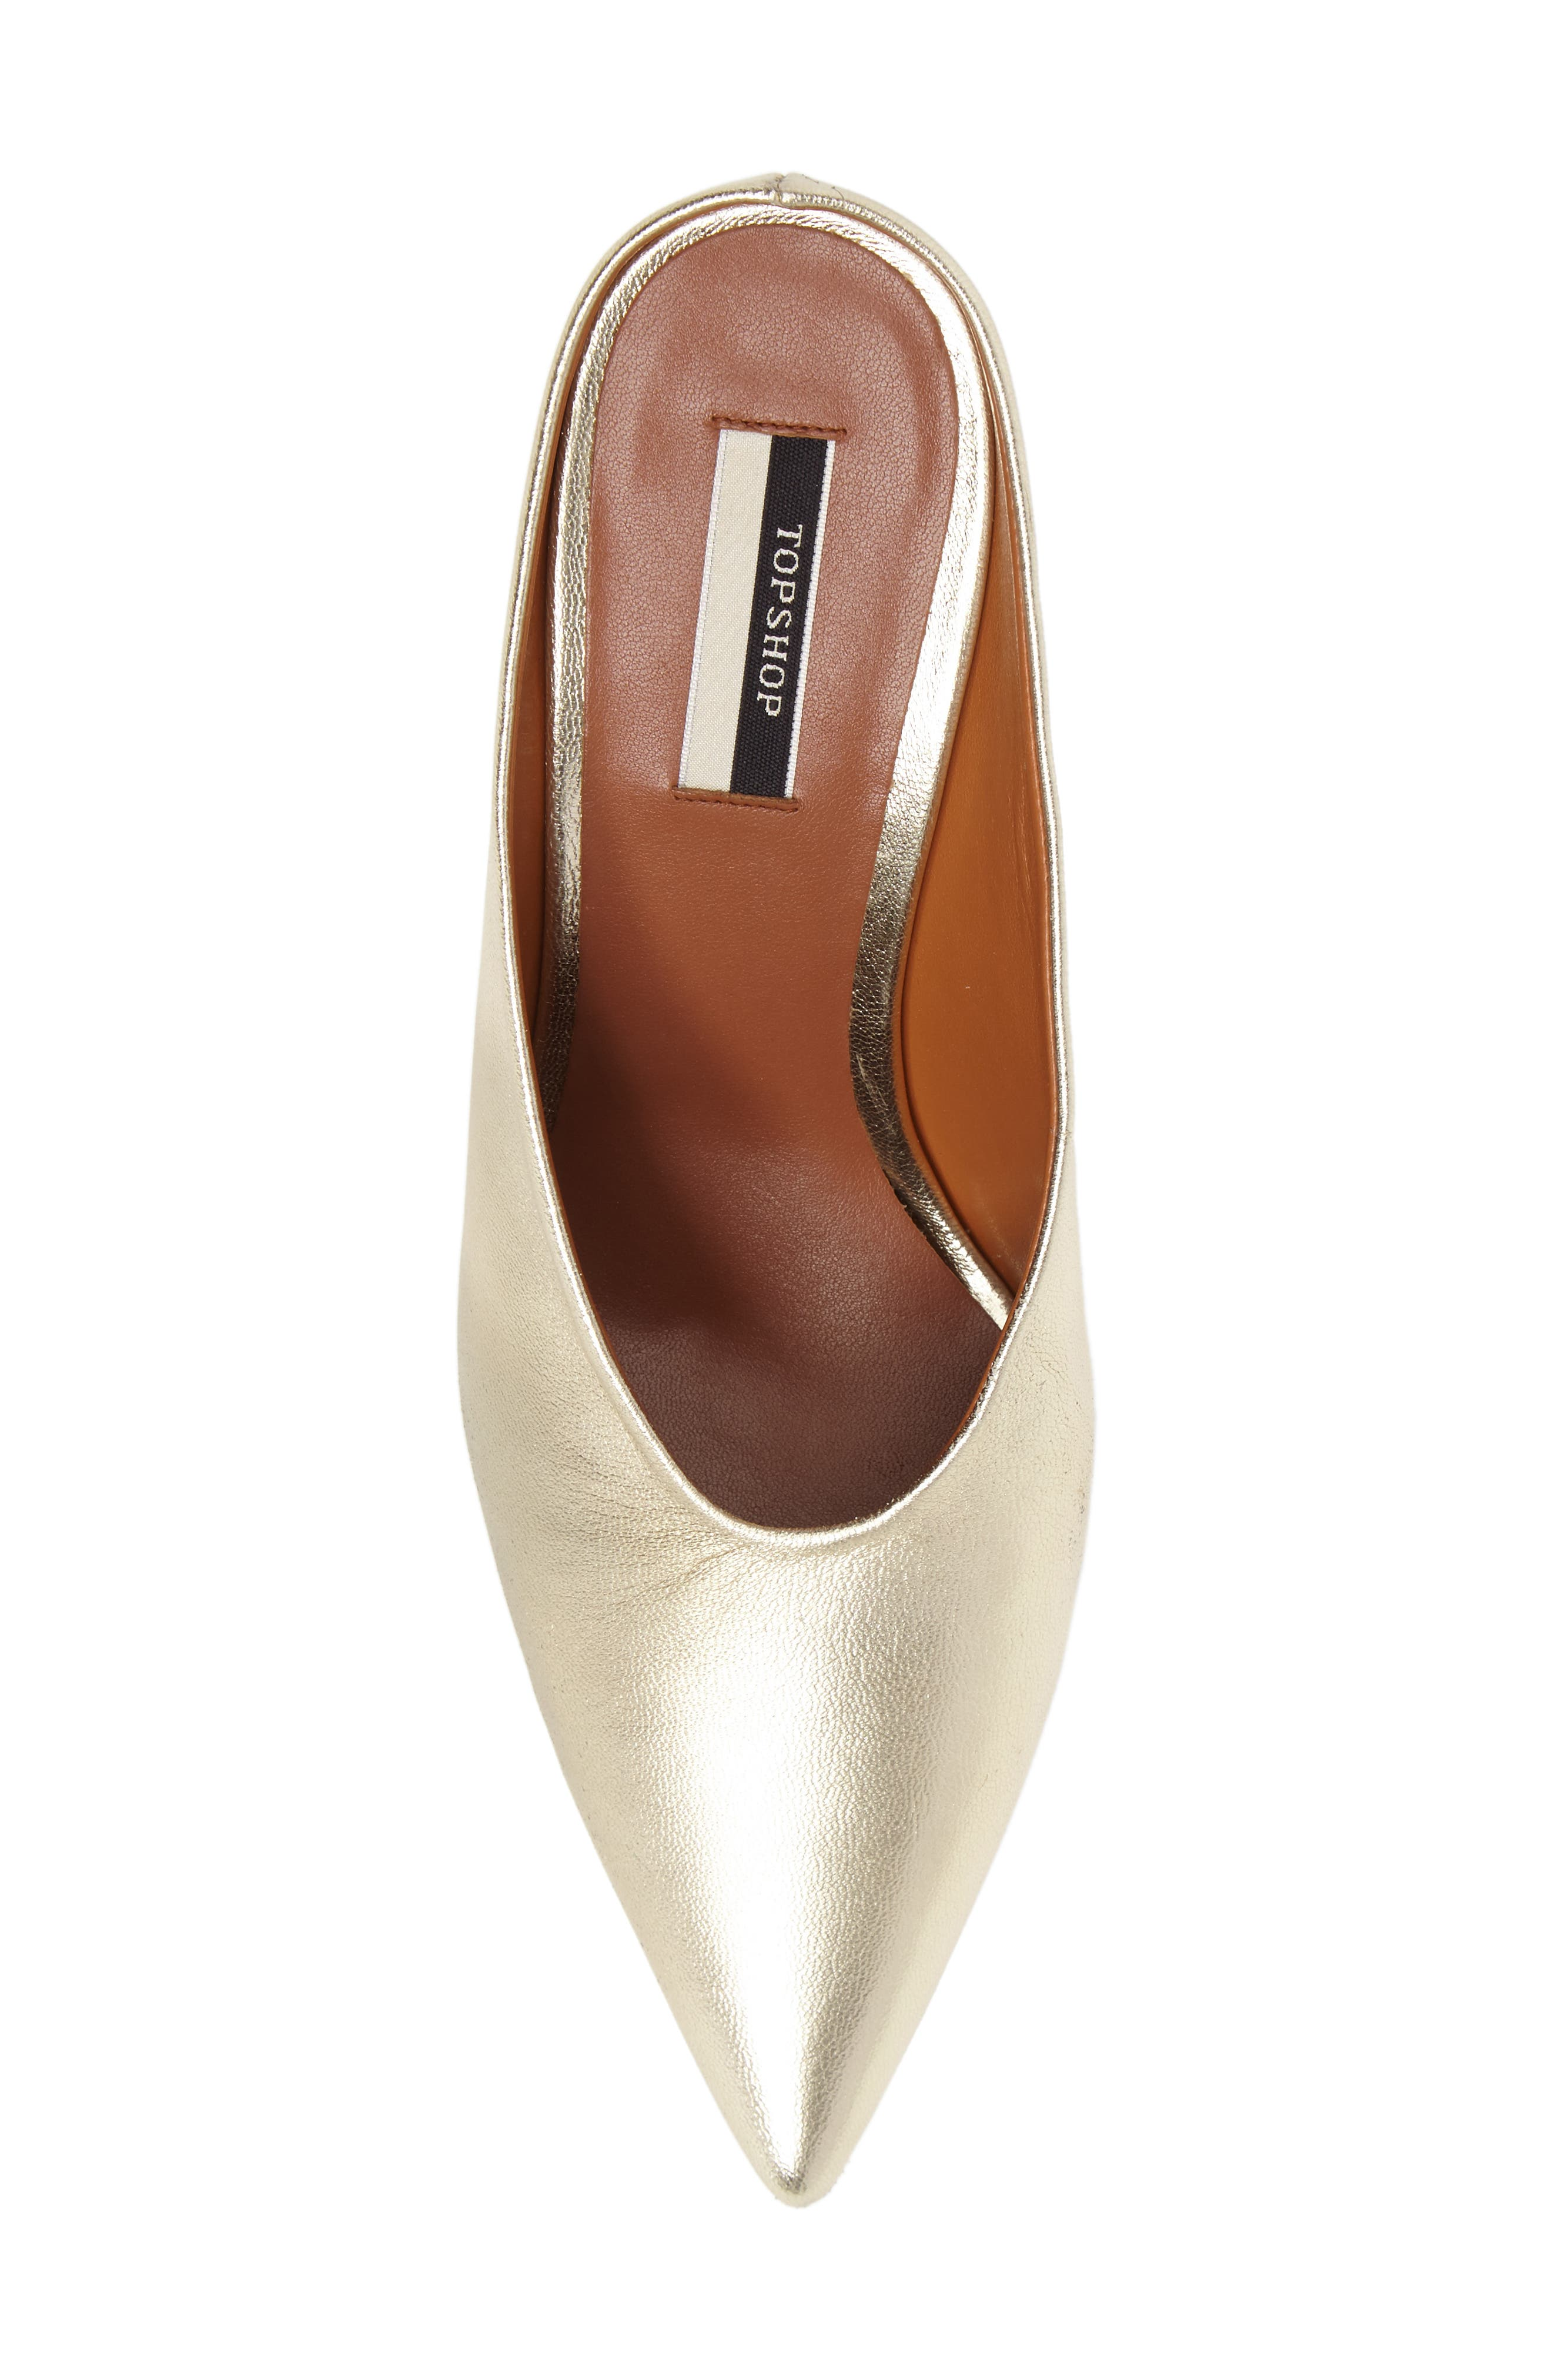 Juicy Pointy Toe Pump,                             Alternate thumbnail 5, color,                             Gold Leather